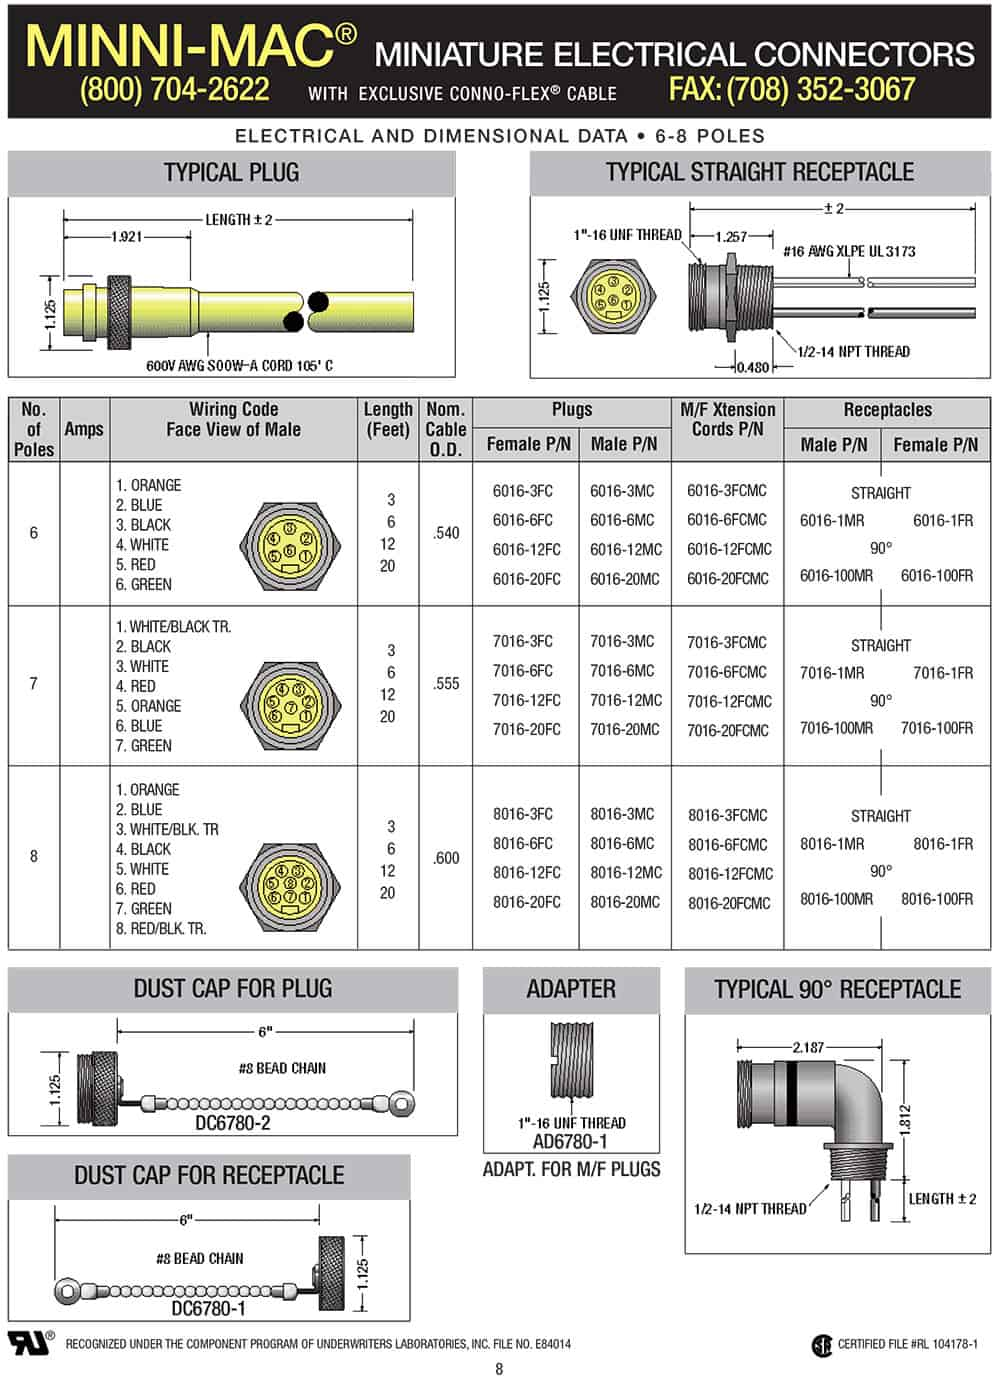 Minni Mac 6-8 pole connectors spec sheet